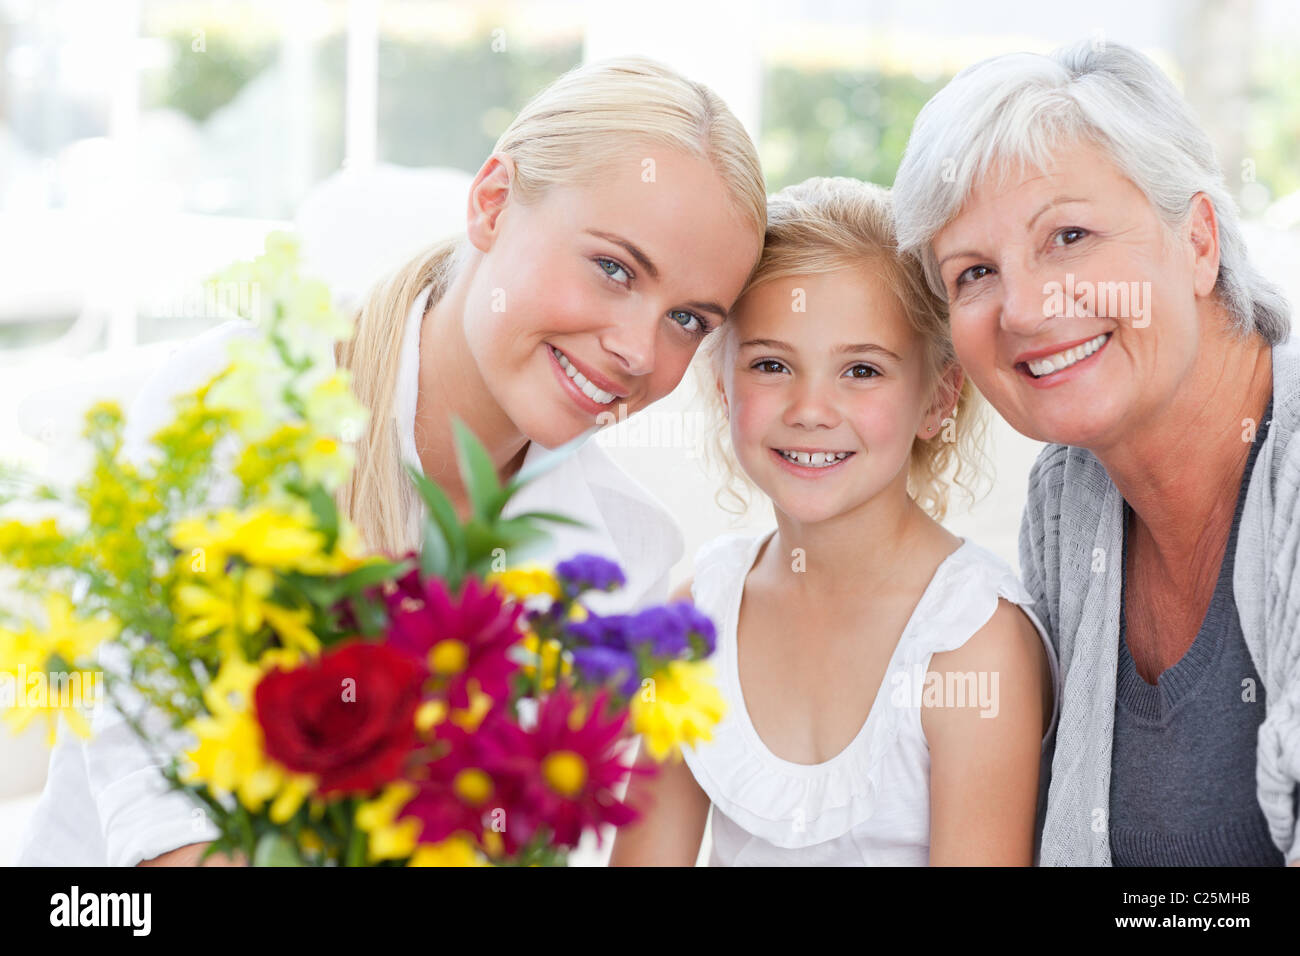 Radiant family with flowers - Stock Image